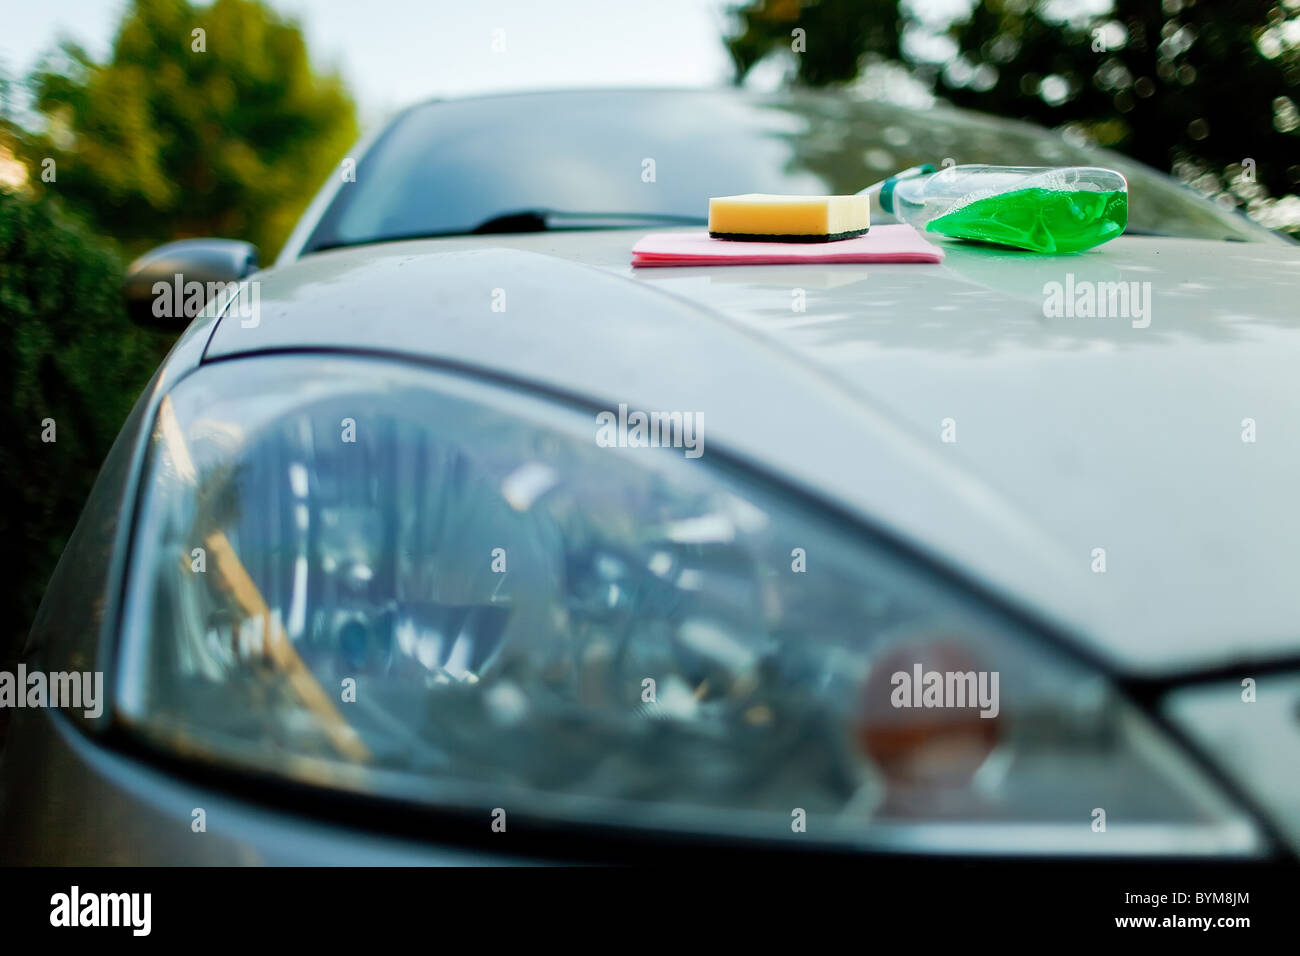 Car Wash - Cleaning the Car - Stock Image